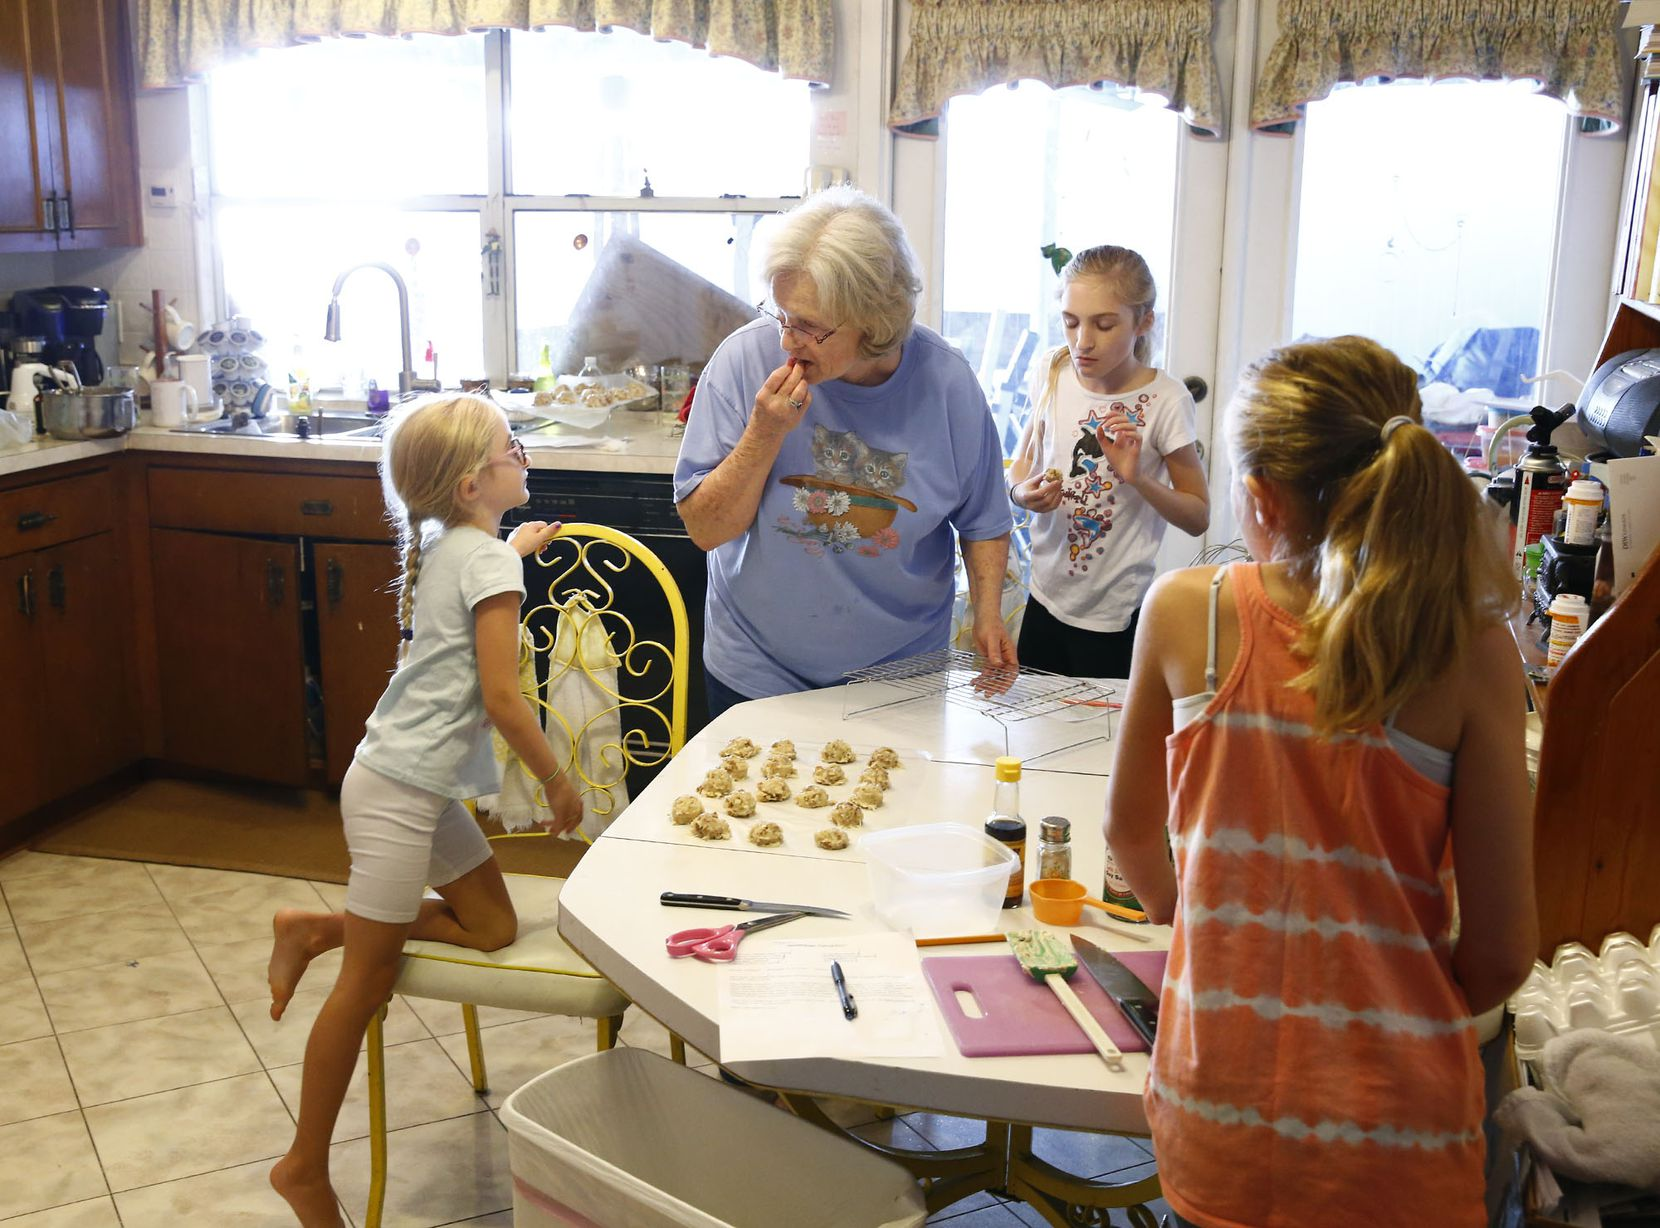 Summer Garmon, 6, (from left) looks at her grandmother Peggy Garmon with her sisters Elizabeth and Allyson, both 11, make candy at Peggy's home in Rowlett.